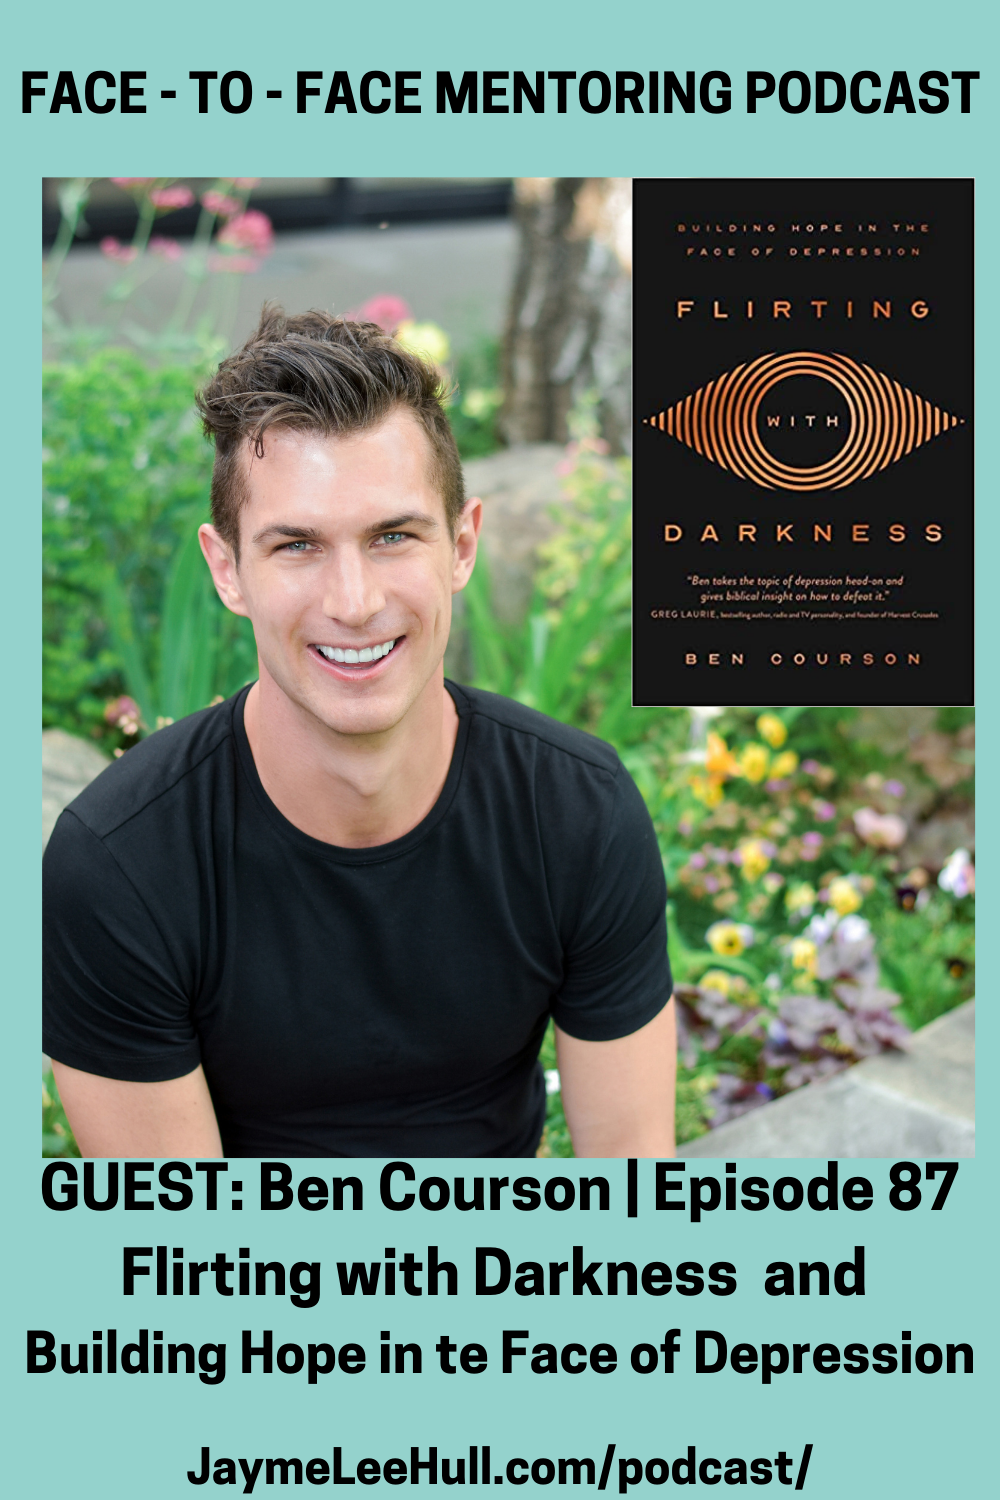 Did you know you don't have to settle for just learning to live with your depression? No, you can rise above it! Listen to Episode 87: Flirting with Darkness and Building Hope in the Face of Depression with the Millennial Leader and much-needed voice of Pastor Ben Courson.